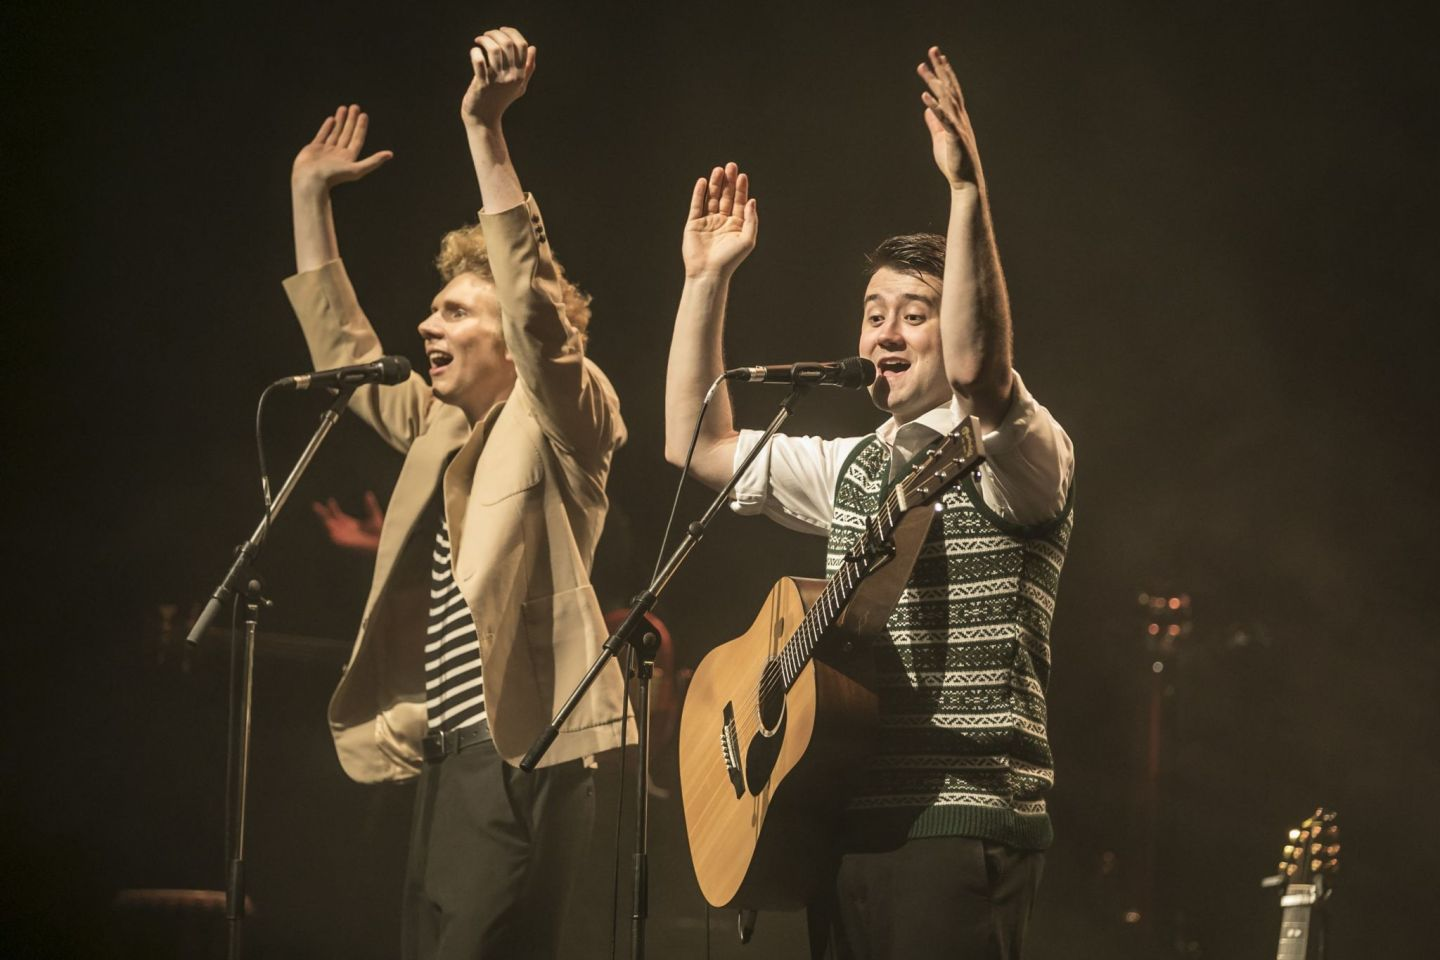 Review: ★★★★ The Simon and Garfunkel Story, Vaudeville Theatre